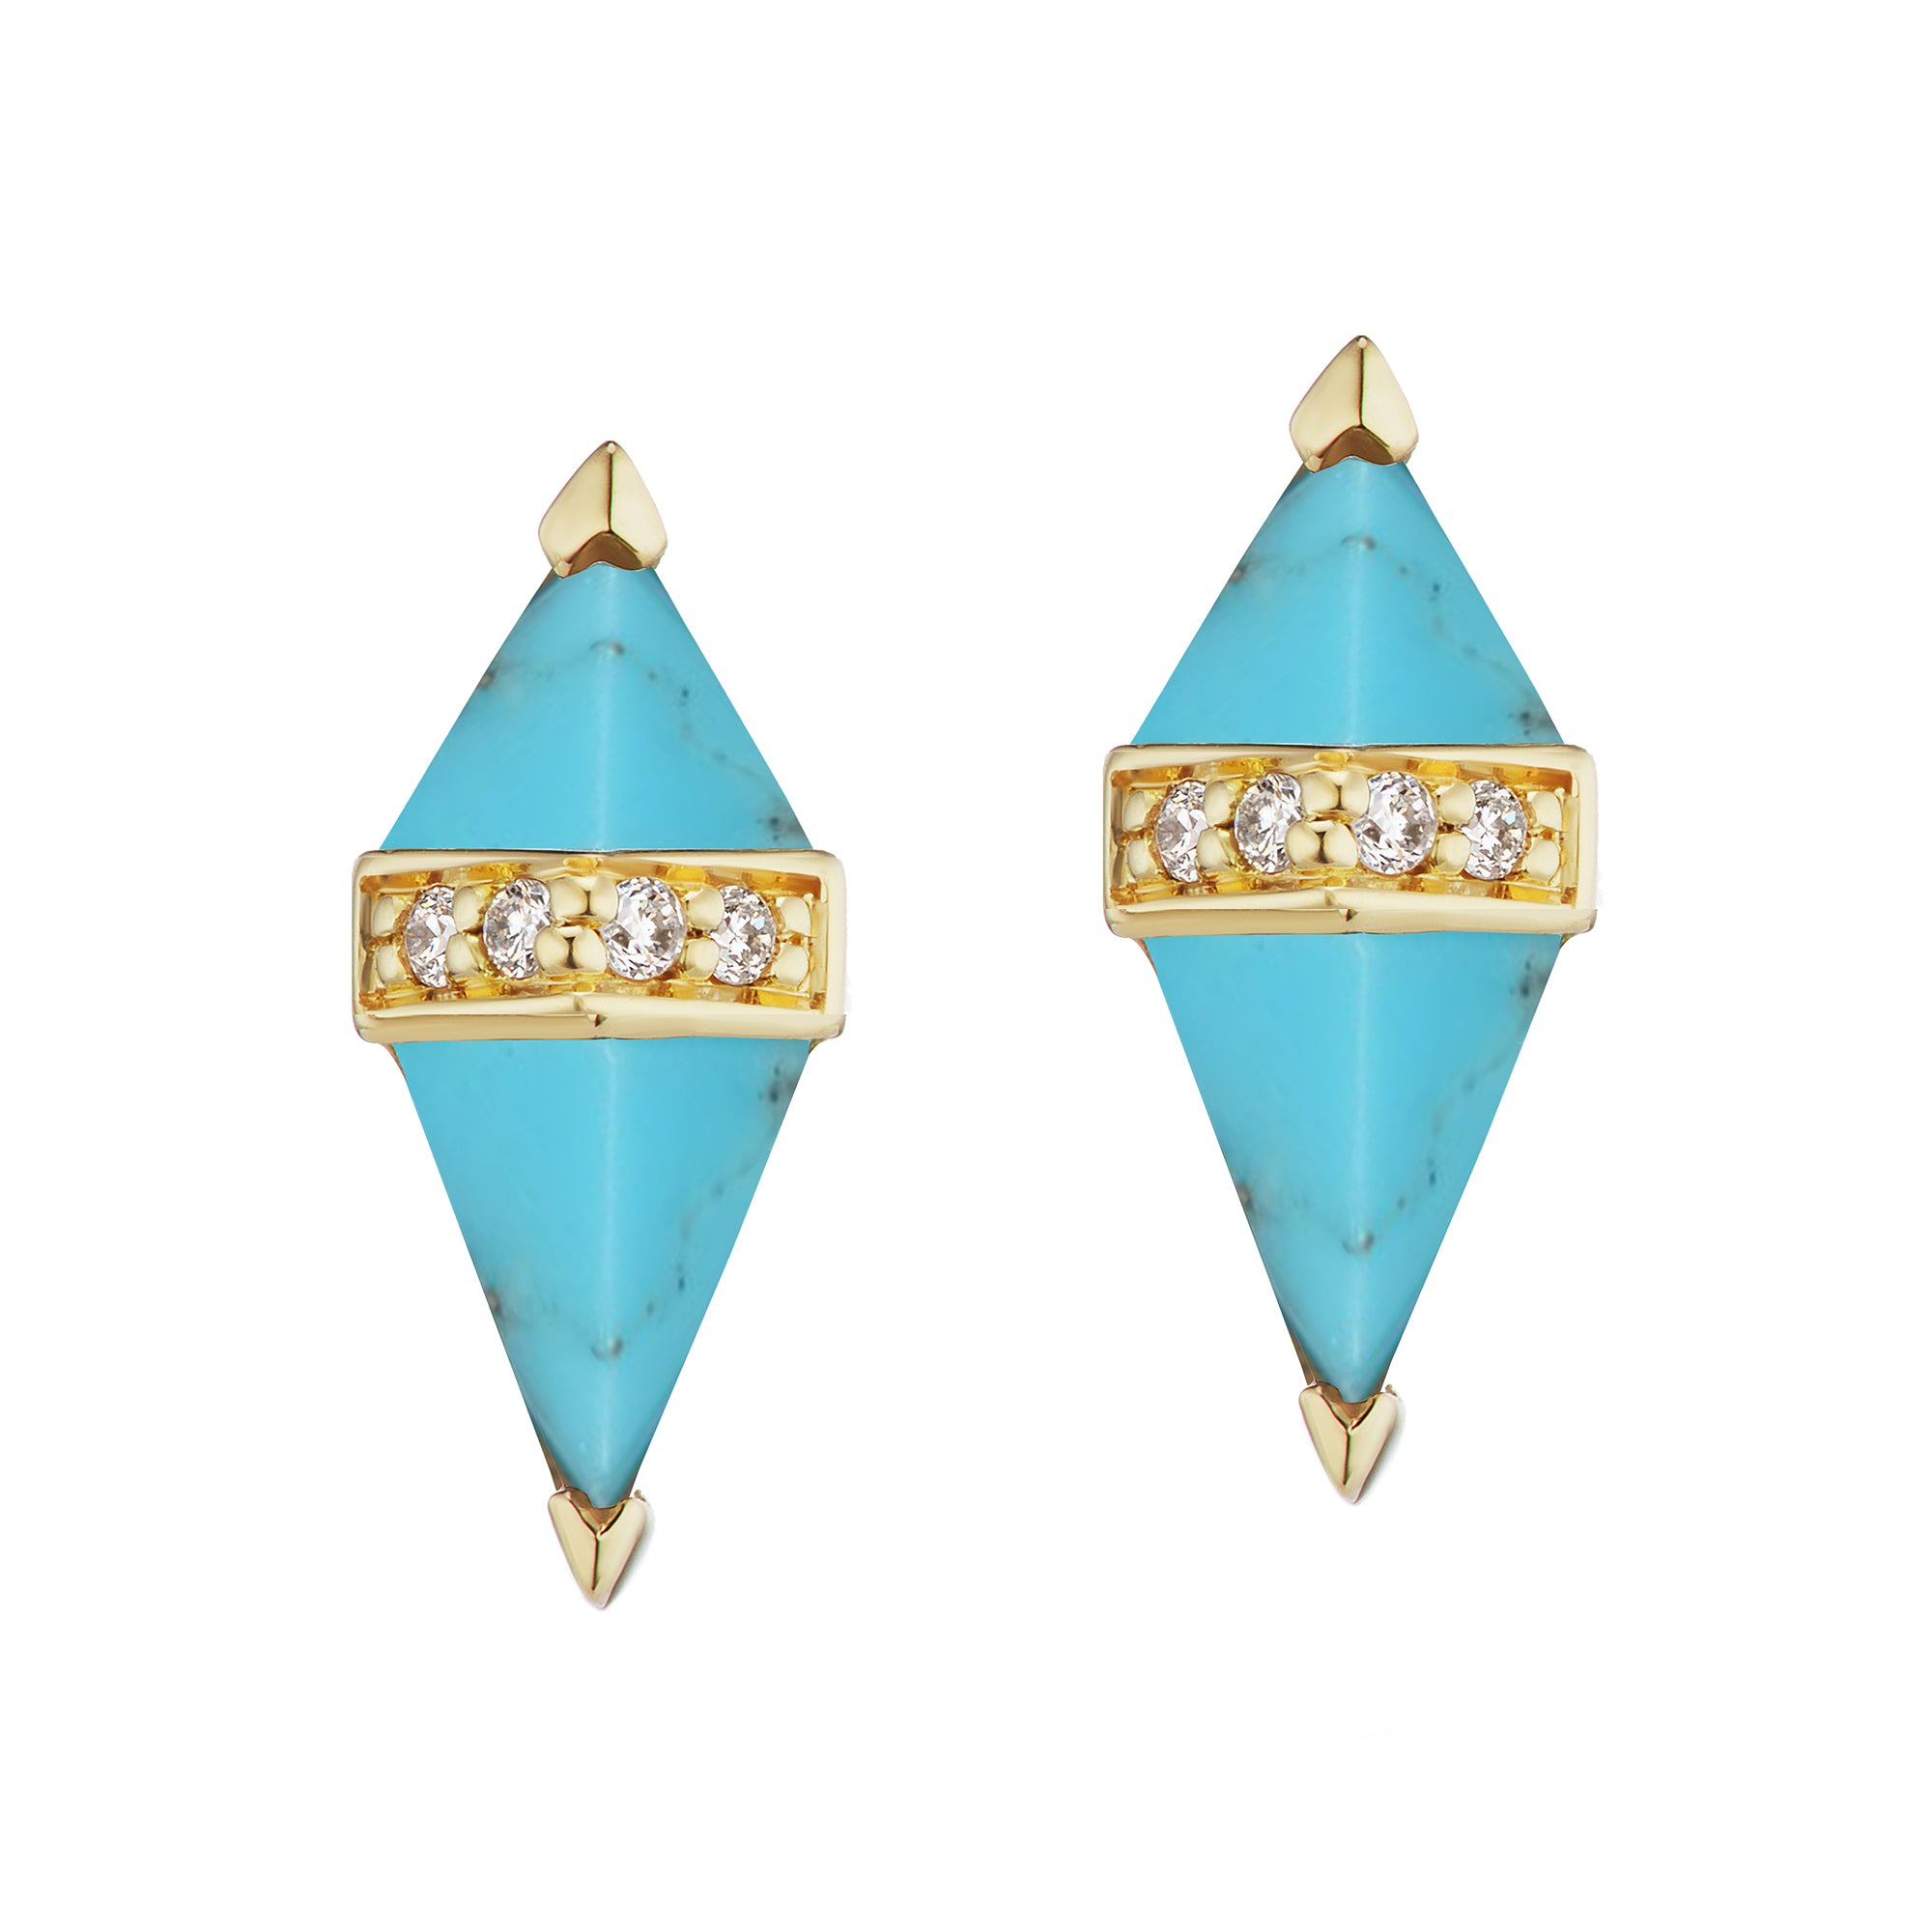 Turquoise Pietra Studs by Sorellina for Broken English Jewelry